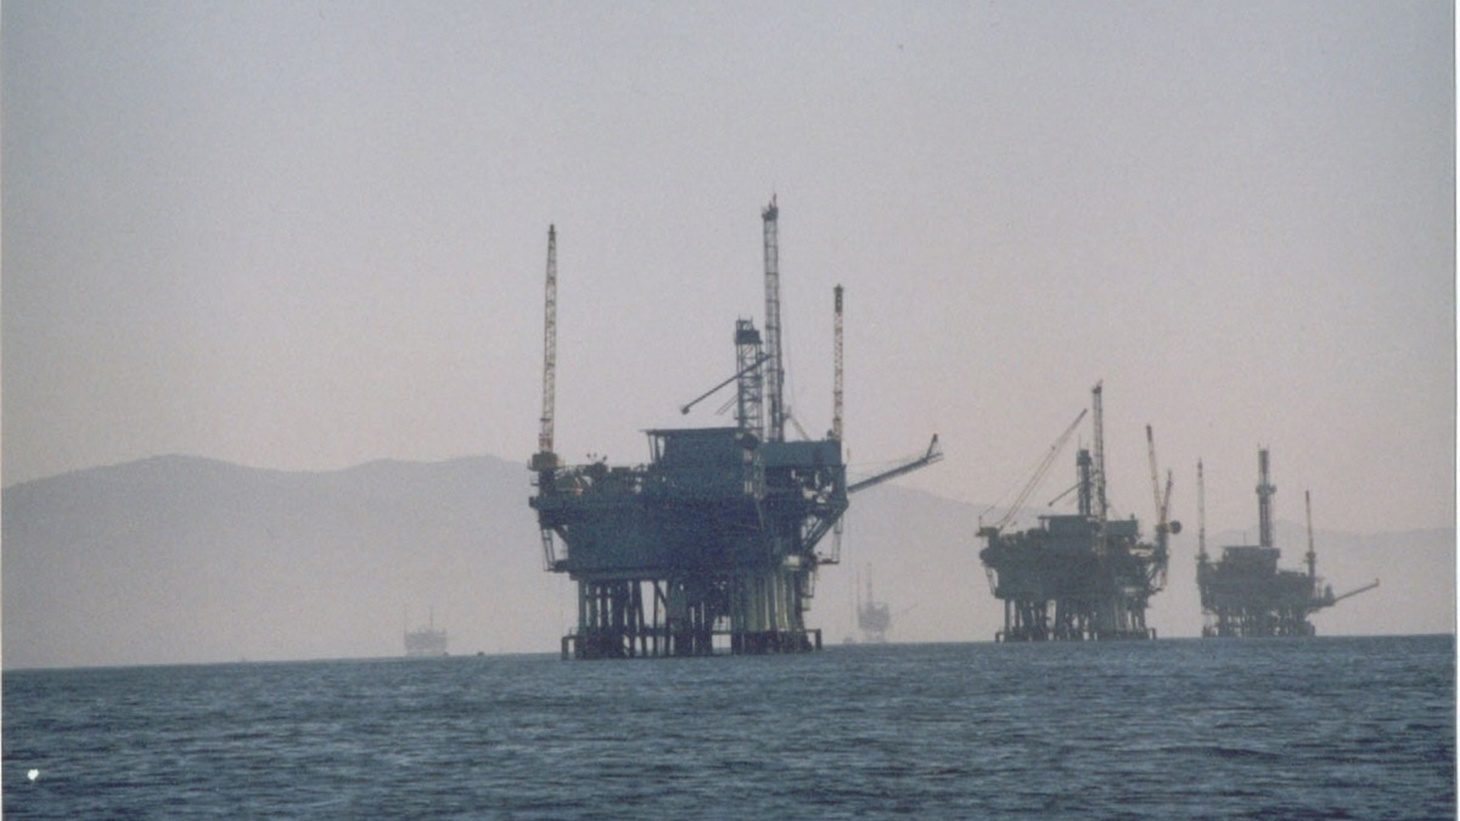 Oil rigs off the coast of California.